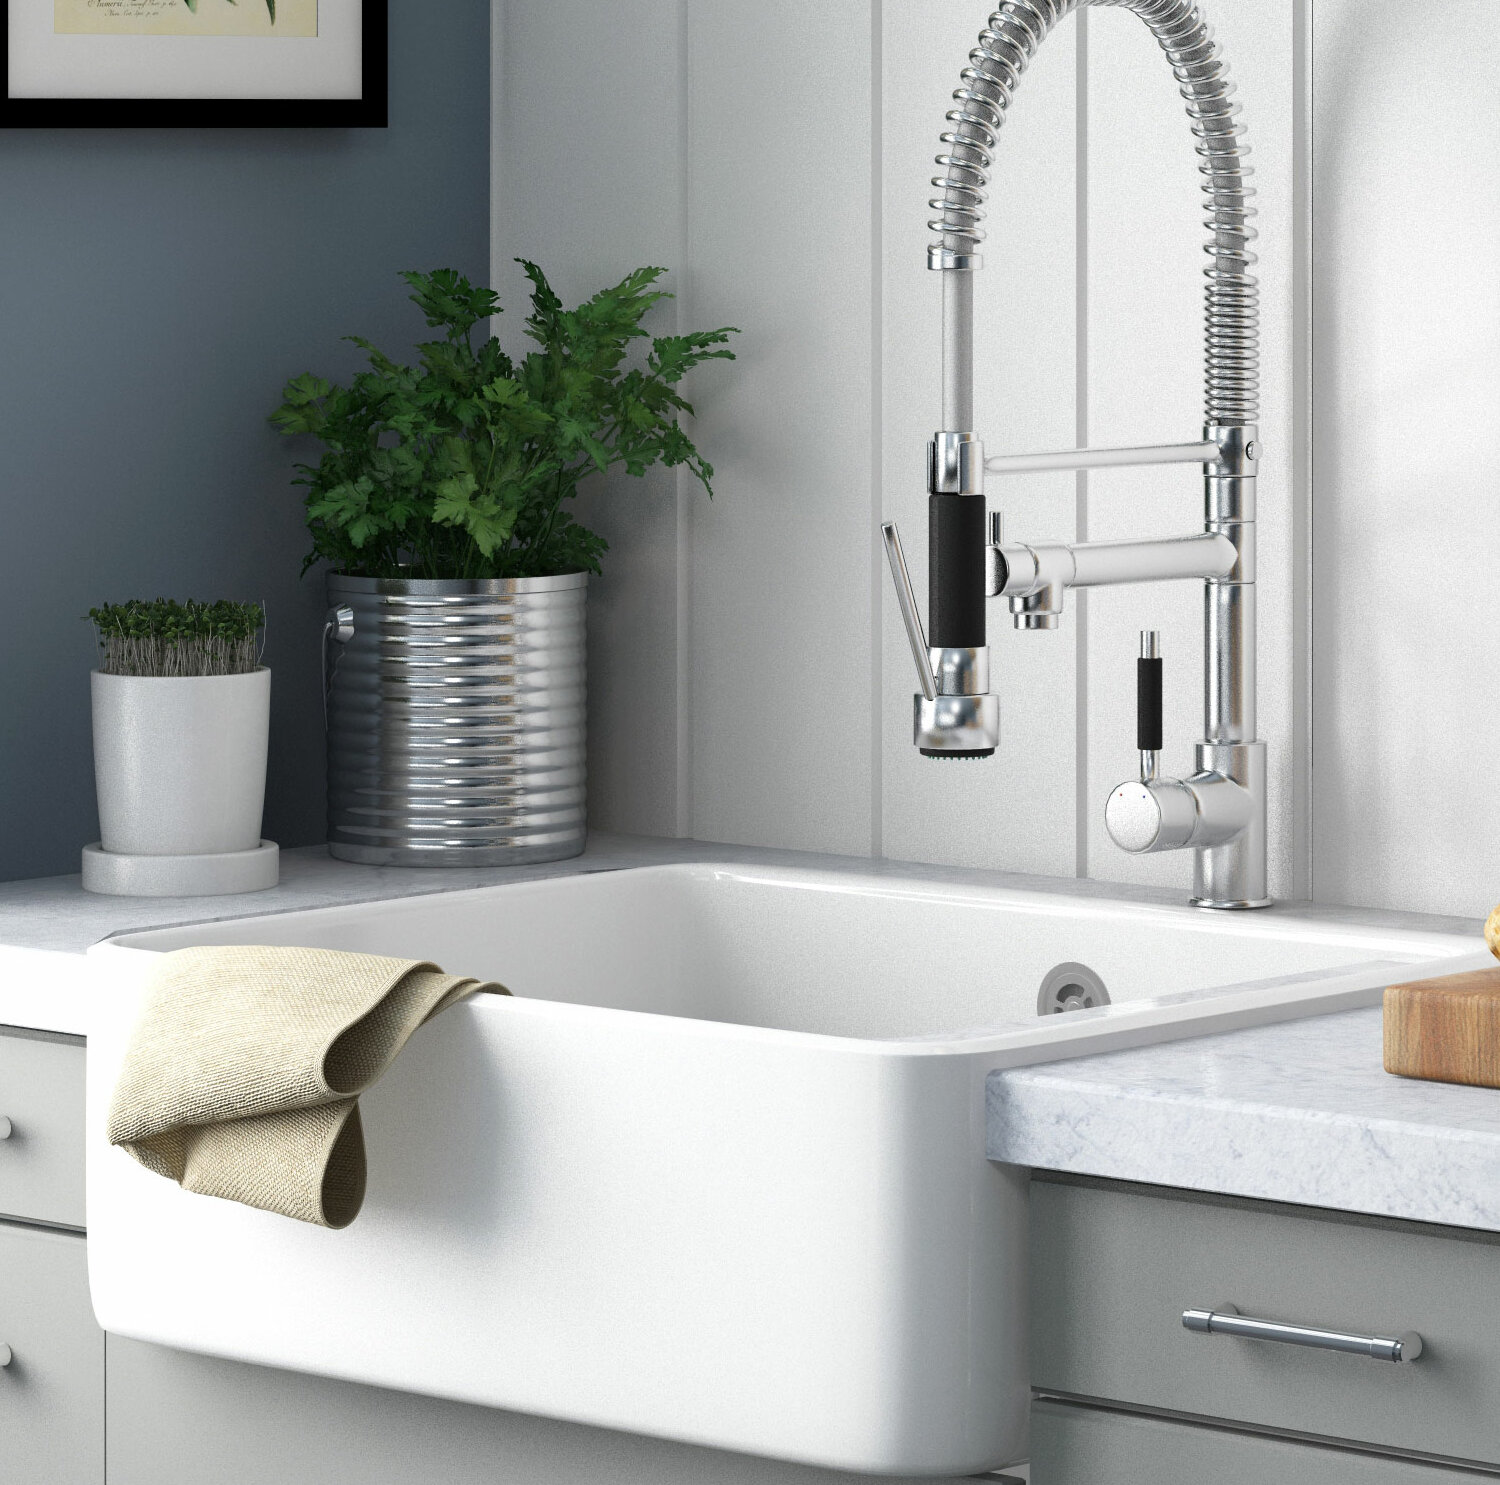 Villeroy And Boch Kitchen Sinks Ireland - Kitchen Appliances ...